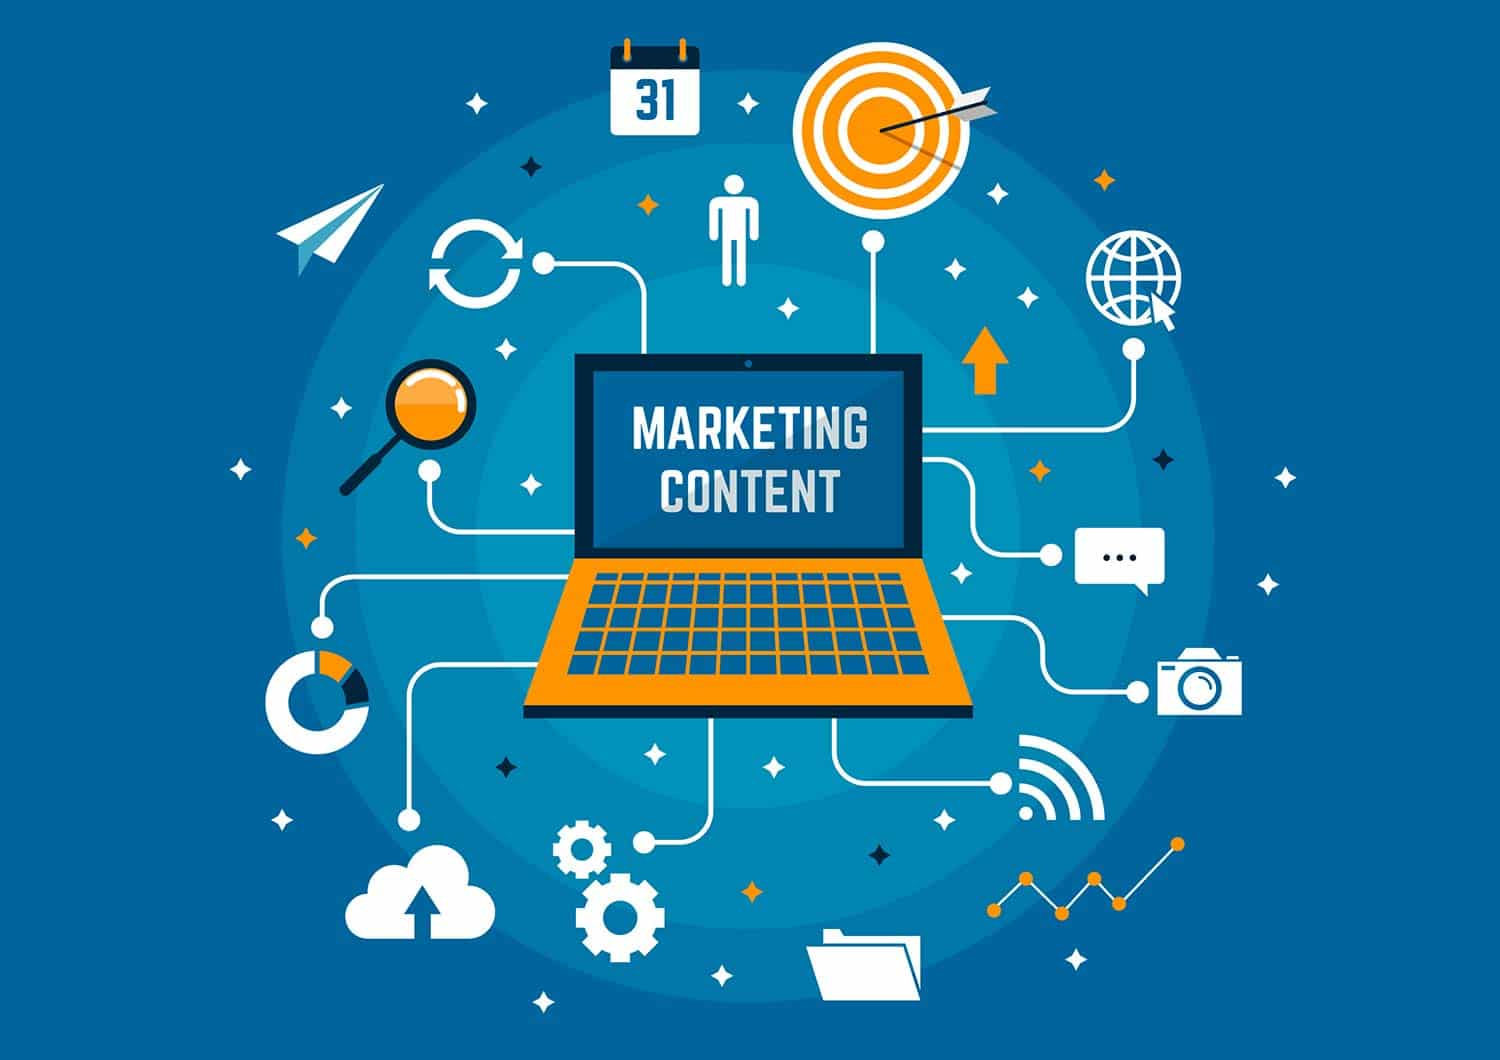 Types of content in your marketing strategy